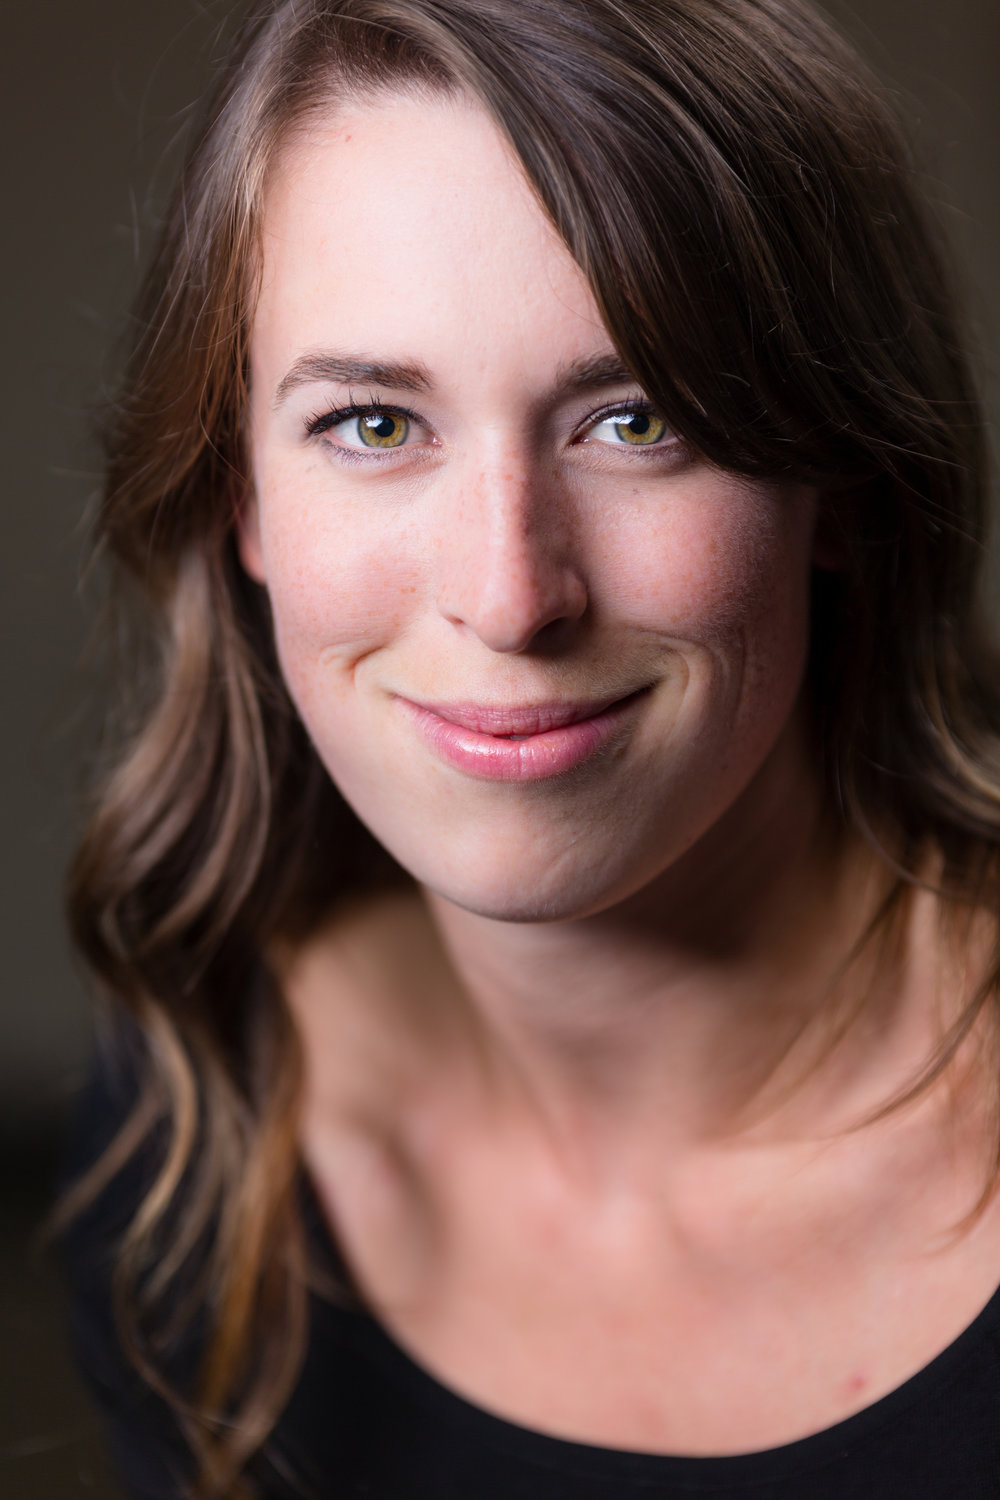 Alaia Hamer - Production DesignerAlaia Hamer is an emerging theatre designer and artist located in Vancouver, BC. Recent projects she has worked on include assistant costume design for Sweat, The Humans (Artsclub), assistant for Three Winters (Amiel Gladstone), costume for C'mon Angie (Touchstone), assistant costume Macbeth (Bard on the Beach), set design for She Kills Monsters (UBC), associate costume design for Onegin (Arts Club), costume assistant for Wells Hill (Action at a Distance), costume design for The Cover of Life (TWU), Redbirds, Homeward Bound (Western Gold Theatre) and various Fringe works. Alaia is a graduate of the UBC Theatre Design program in 2017 and holds an English literature degree from 2012.